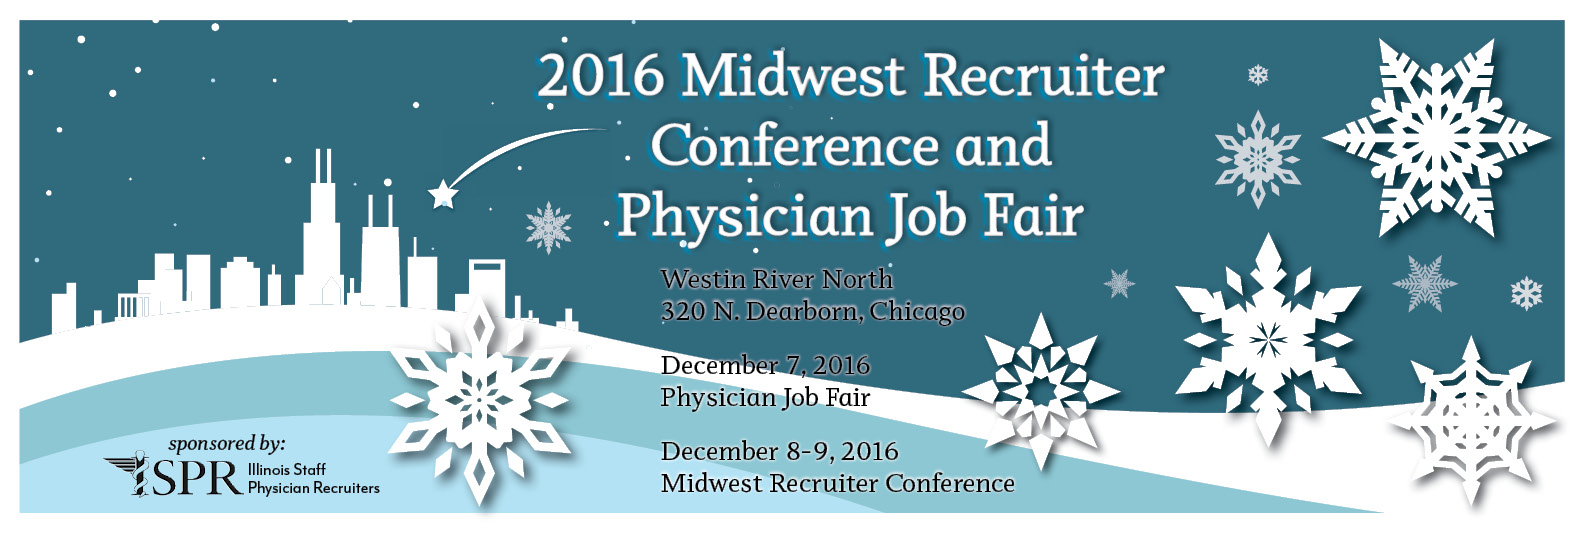 2016 ISPR Midwest Recruiters' Conference